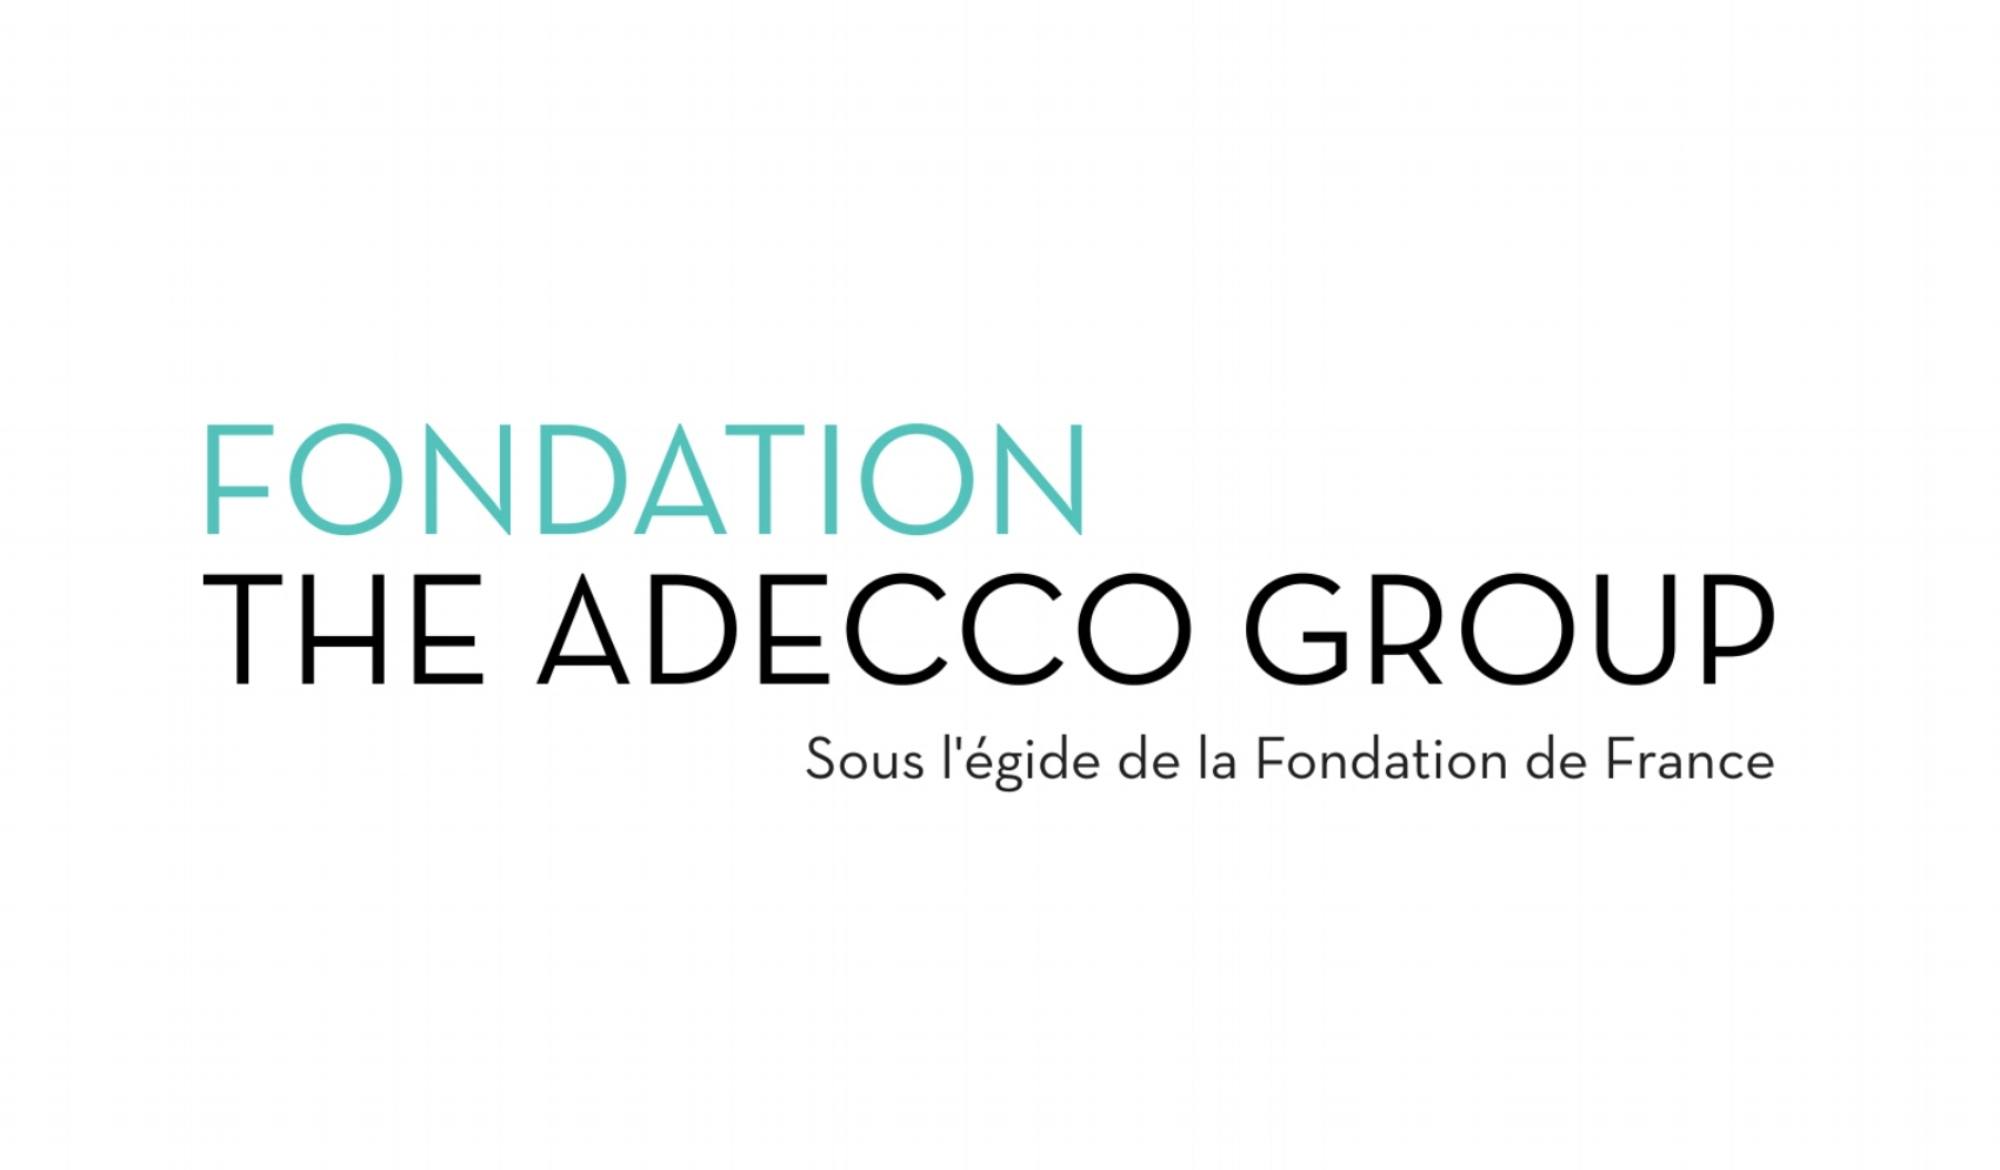 High Res JPG-The Adecco Group Foundation - France.jpg